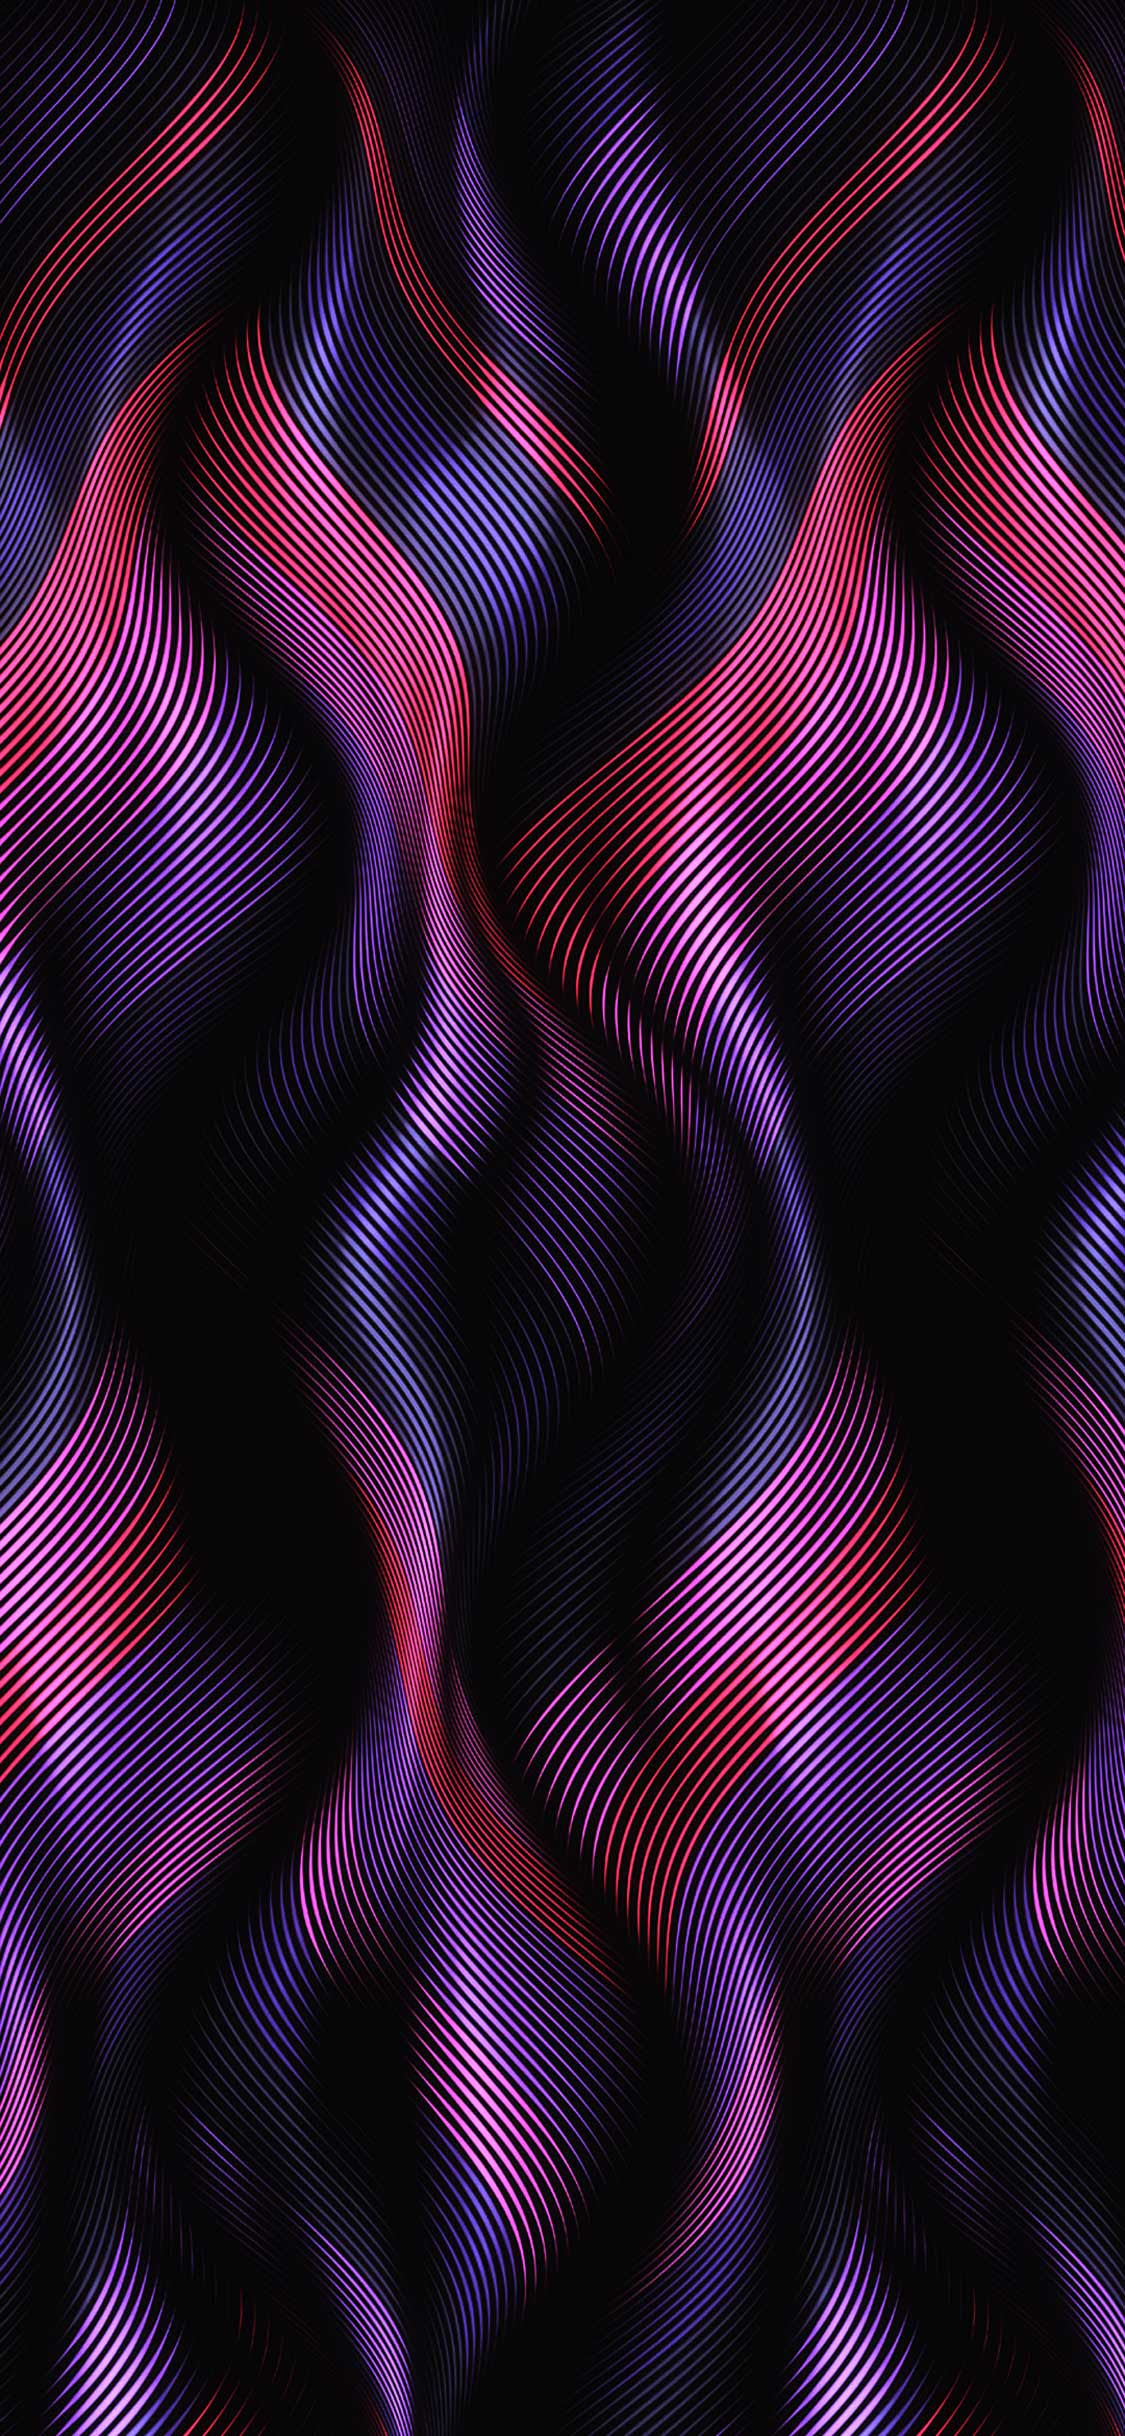 30+ New Cool iPhone X Wallpapers & Backgrounds to freshen ...